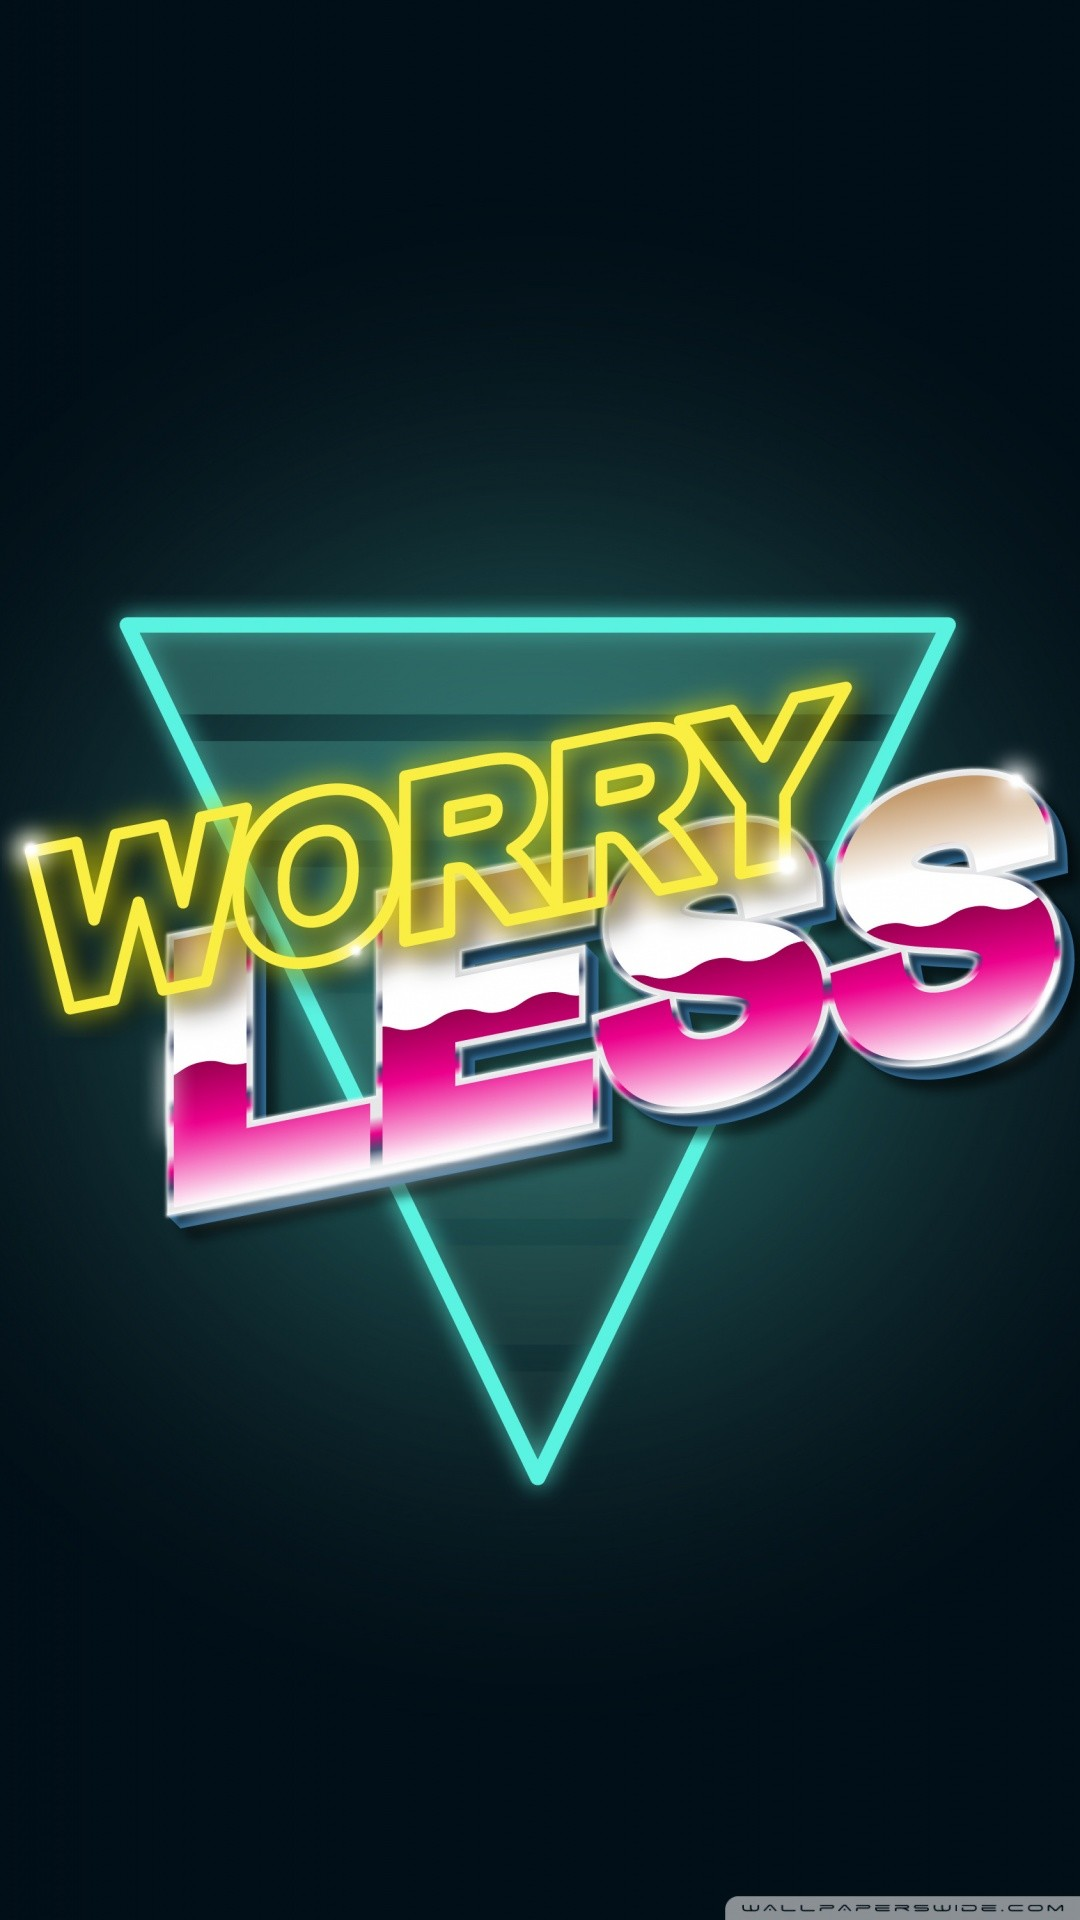 Free Worry Less phone wallpaper by kandice89